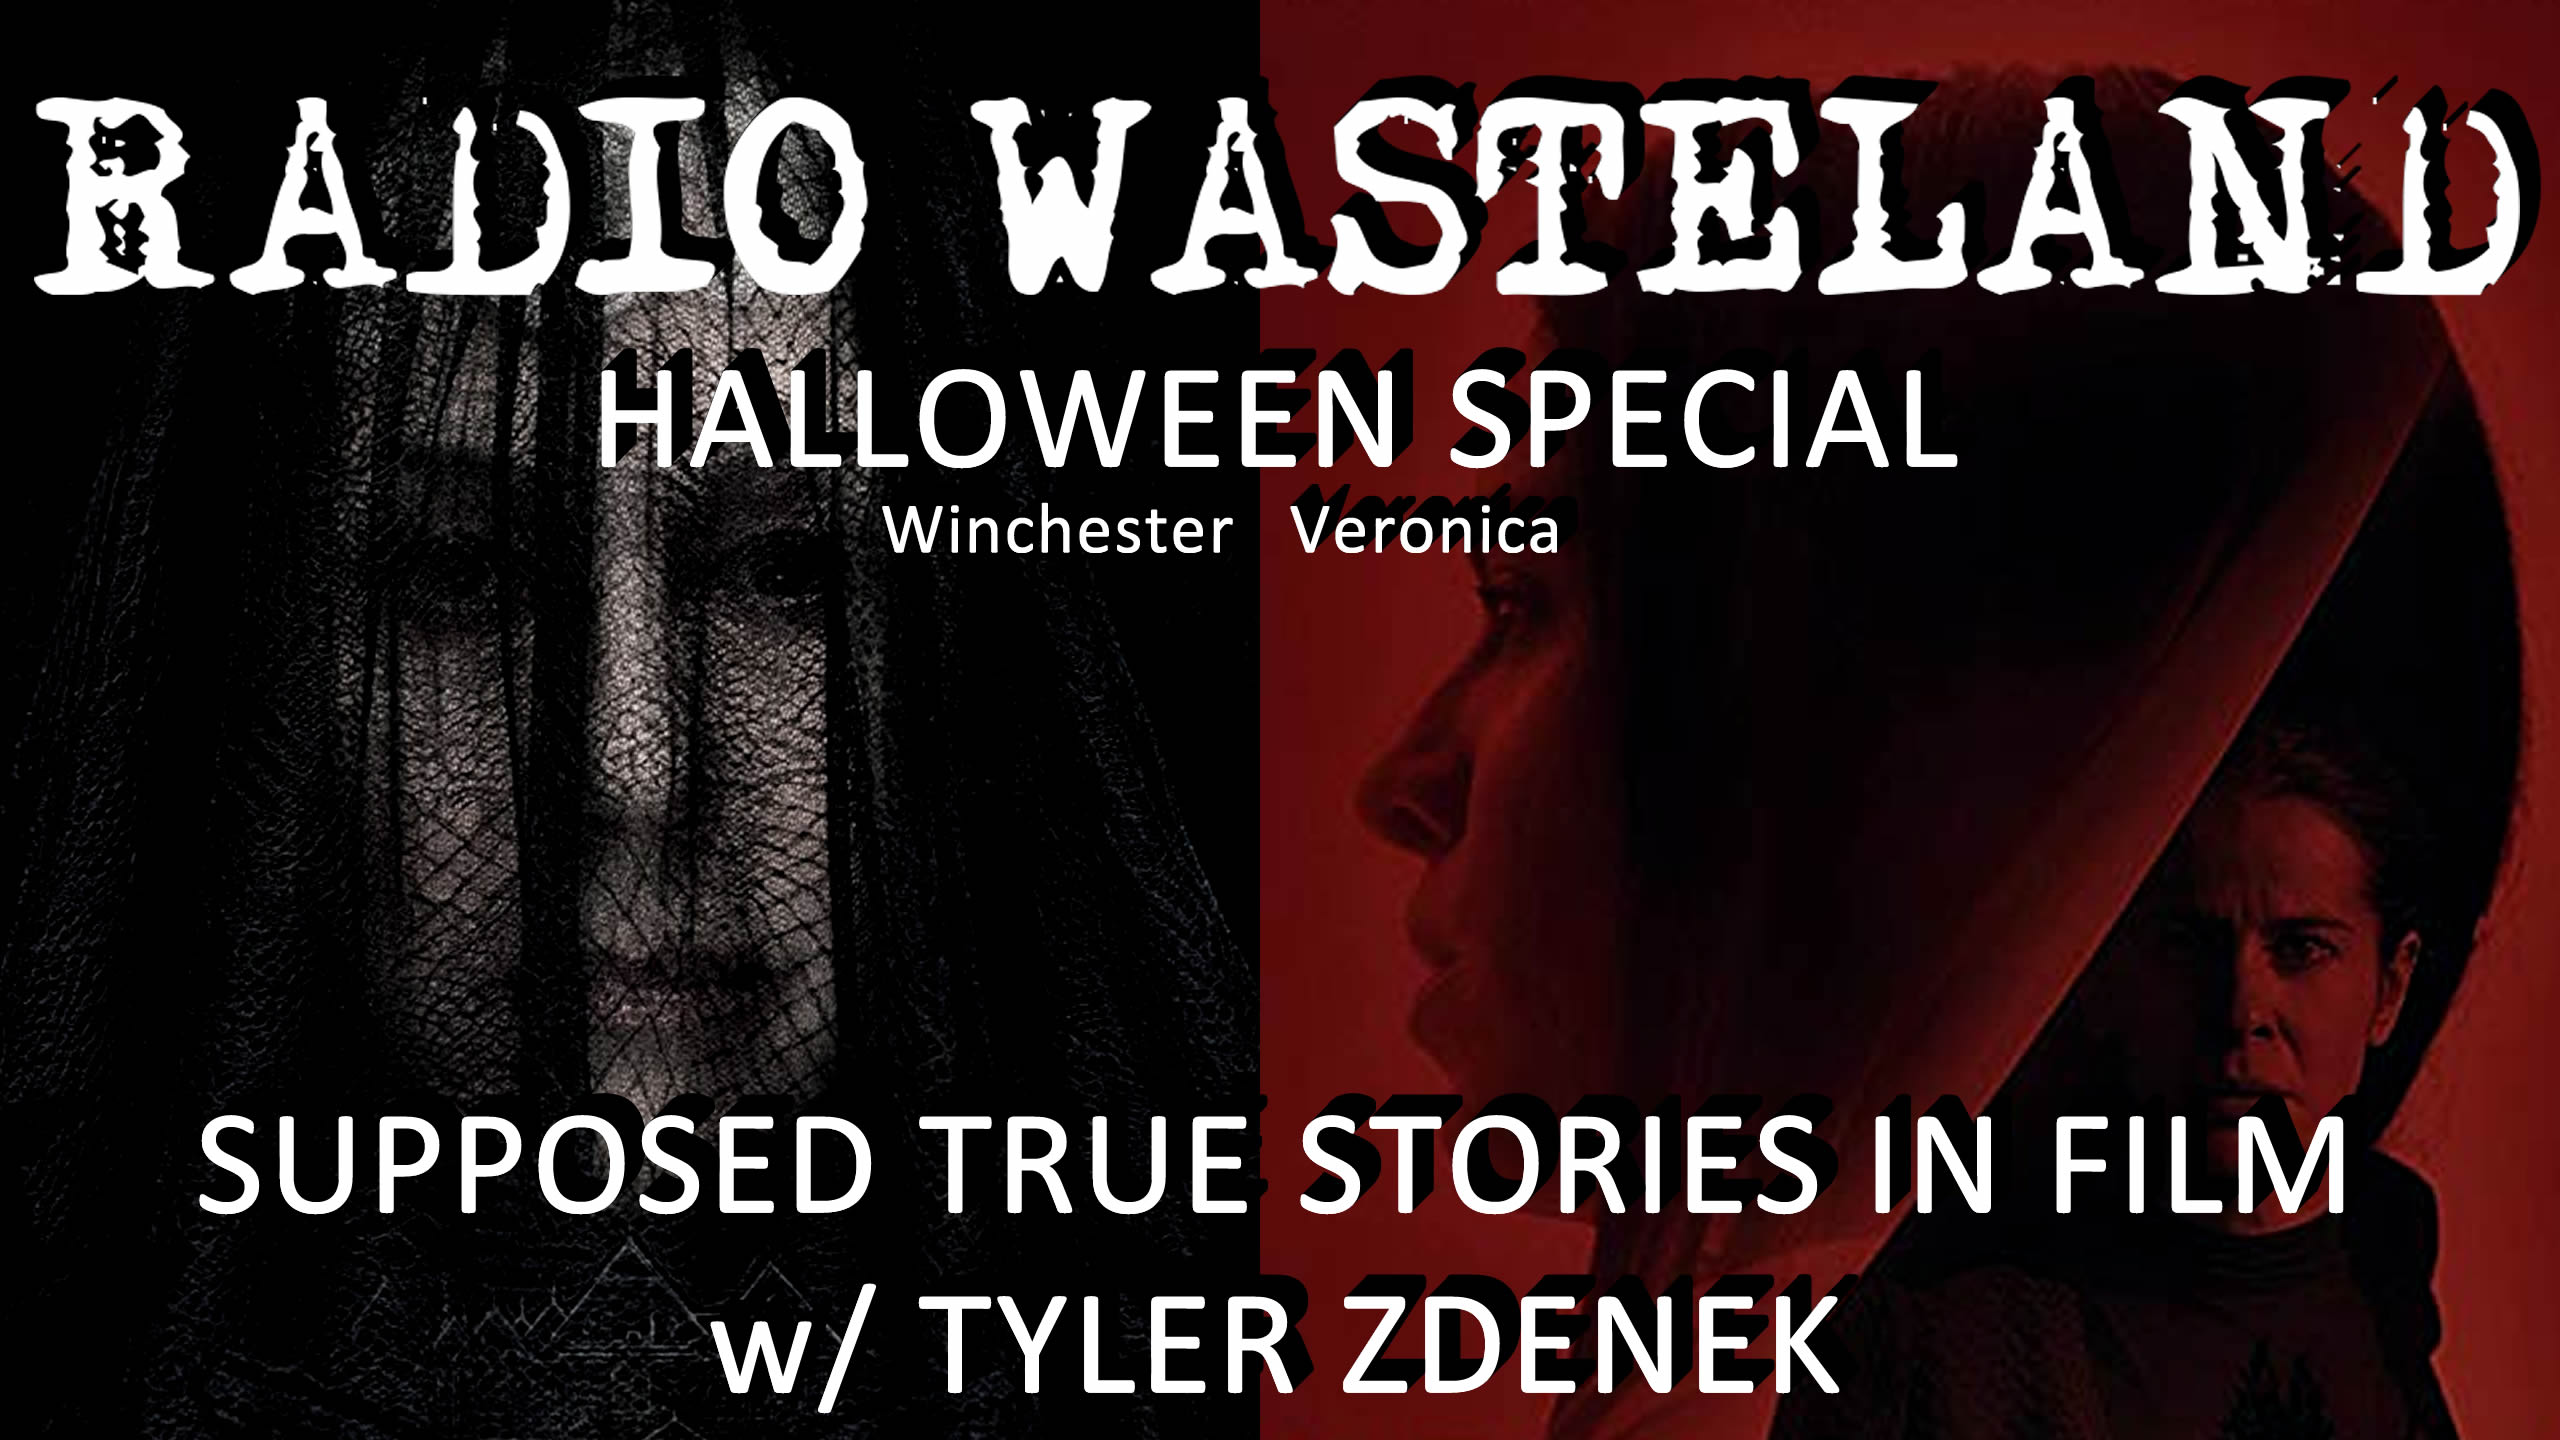 Supposed True Stories in Film w/ Tyler Zdenek